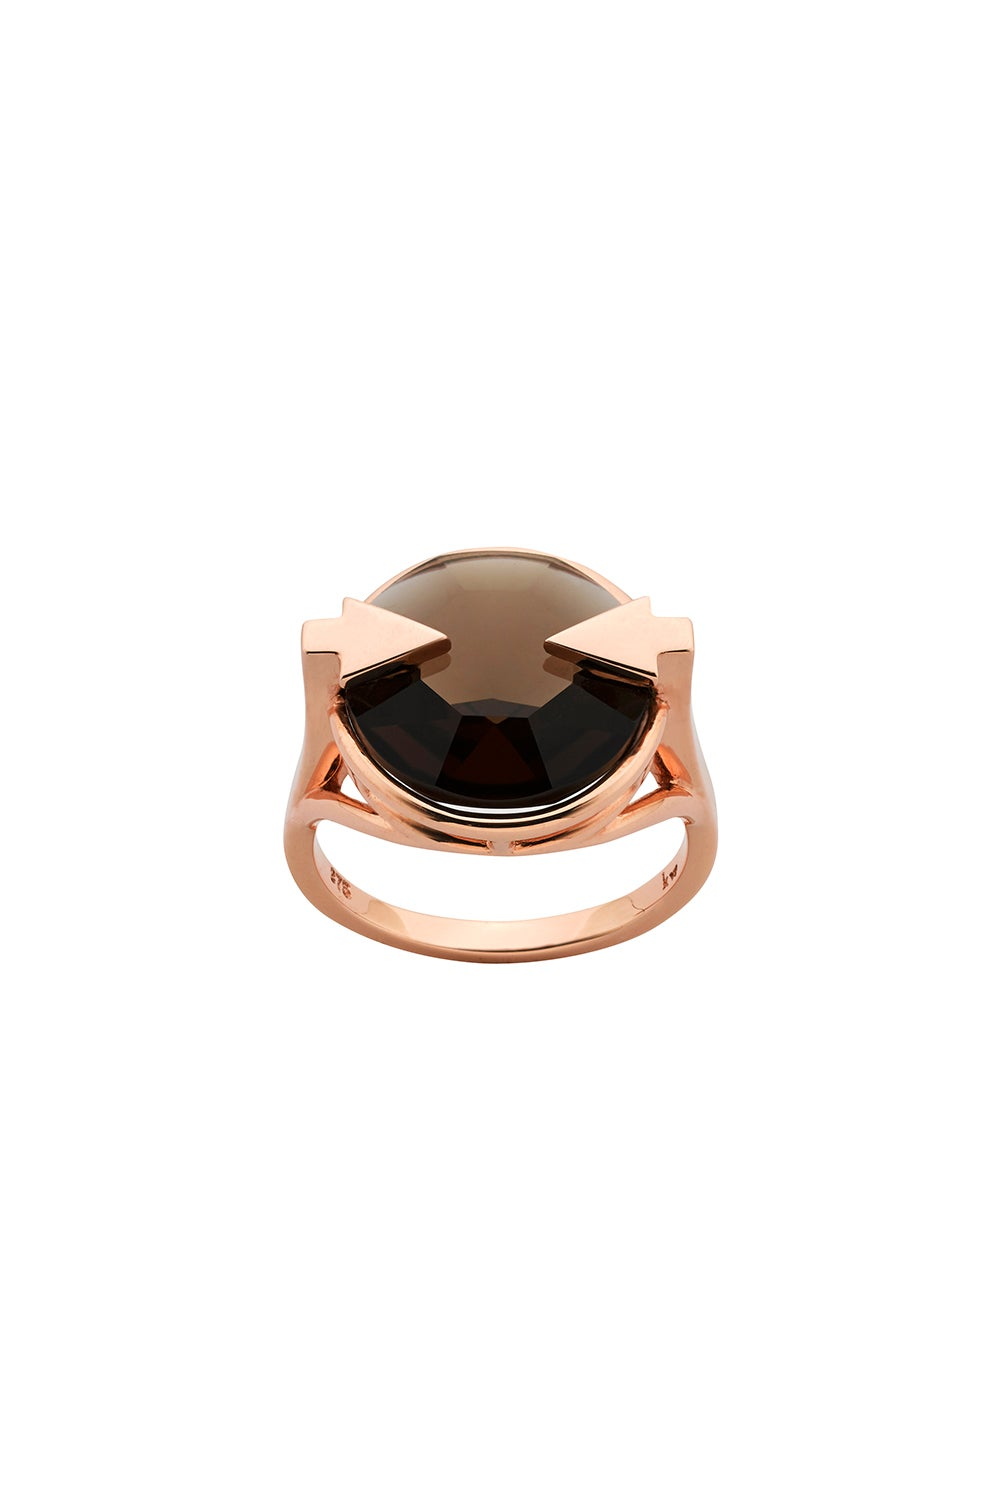 Navigator Ring with 14mm Round Smoky Quartz Rose Gold